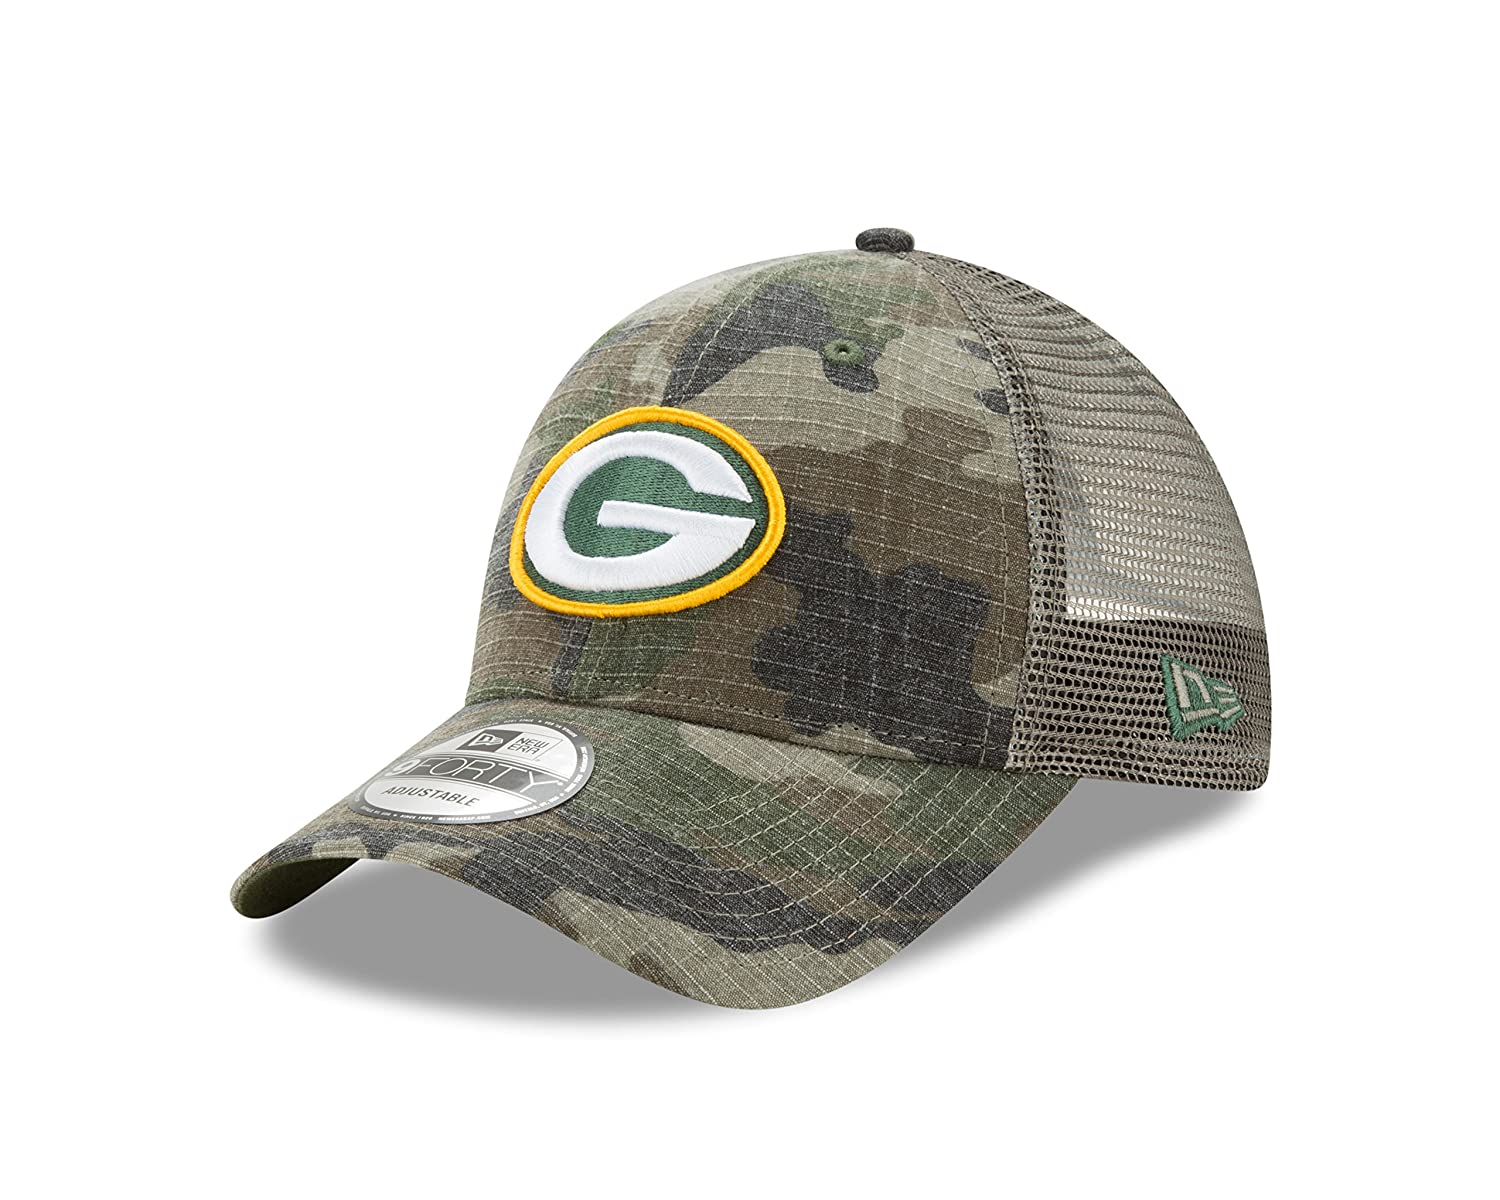 Amazon.com   Green Bay Packers Camo Trucker Duel New Era 9FORTY Adjustable  Snapback Hat   Cap   Sports   Outdoors 9acfccfc43a